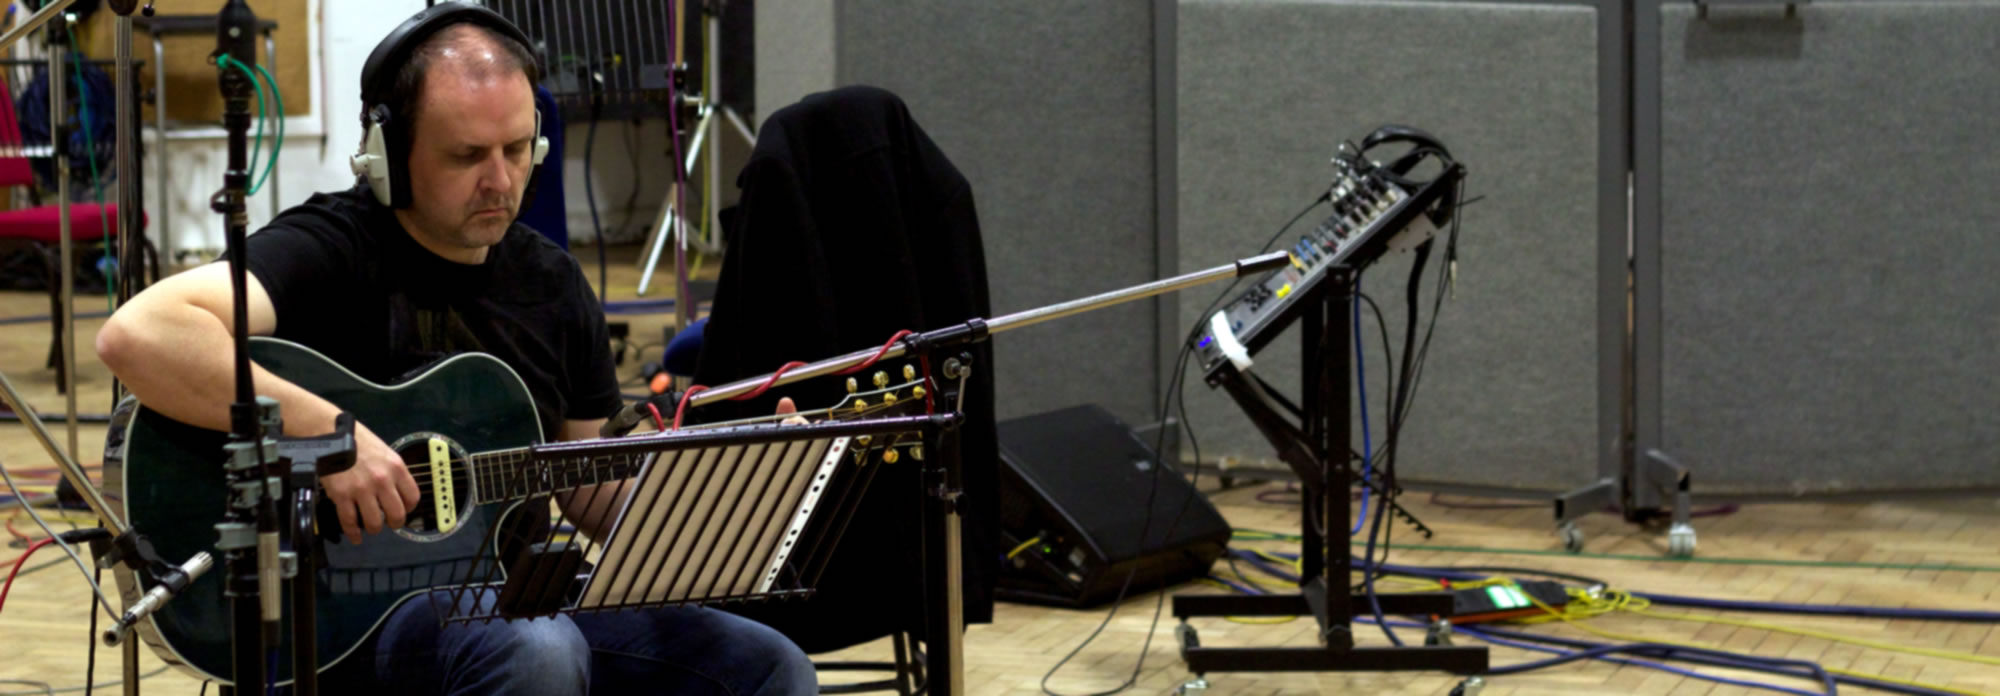 Session guitarist John Wallace recording at Abbey Road, Studio 2